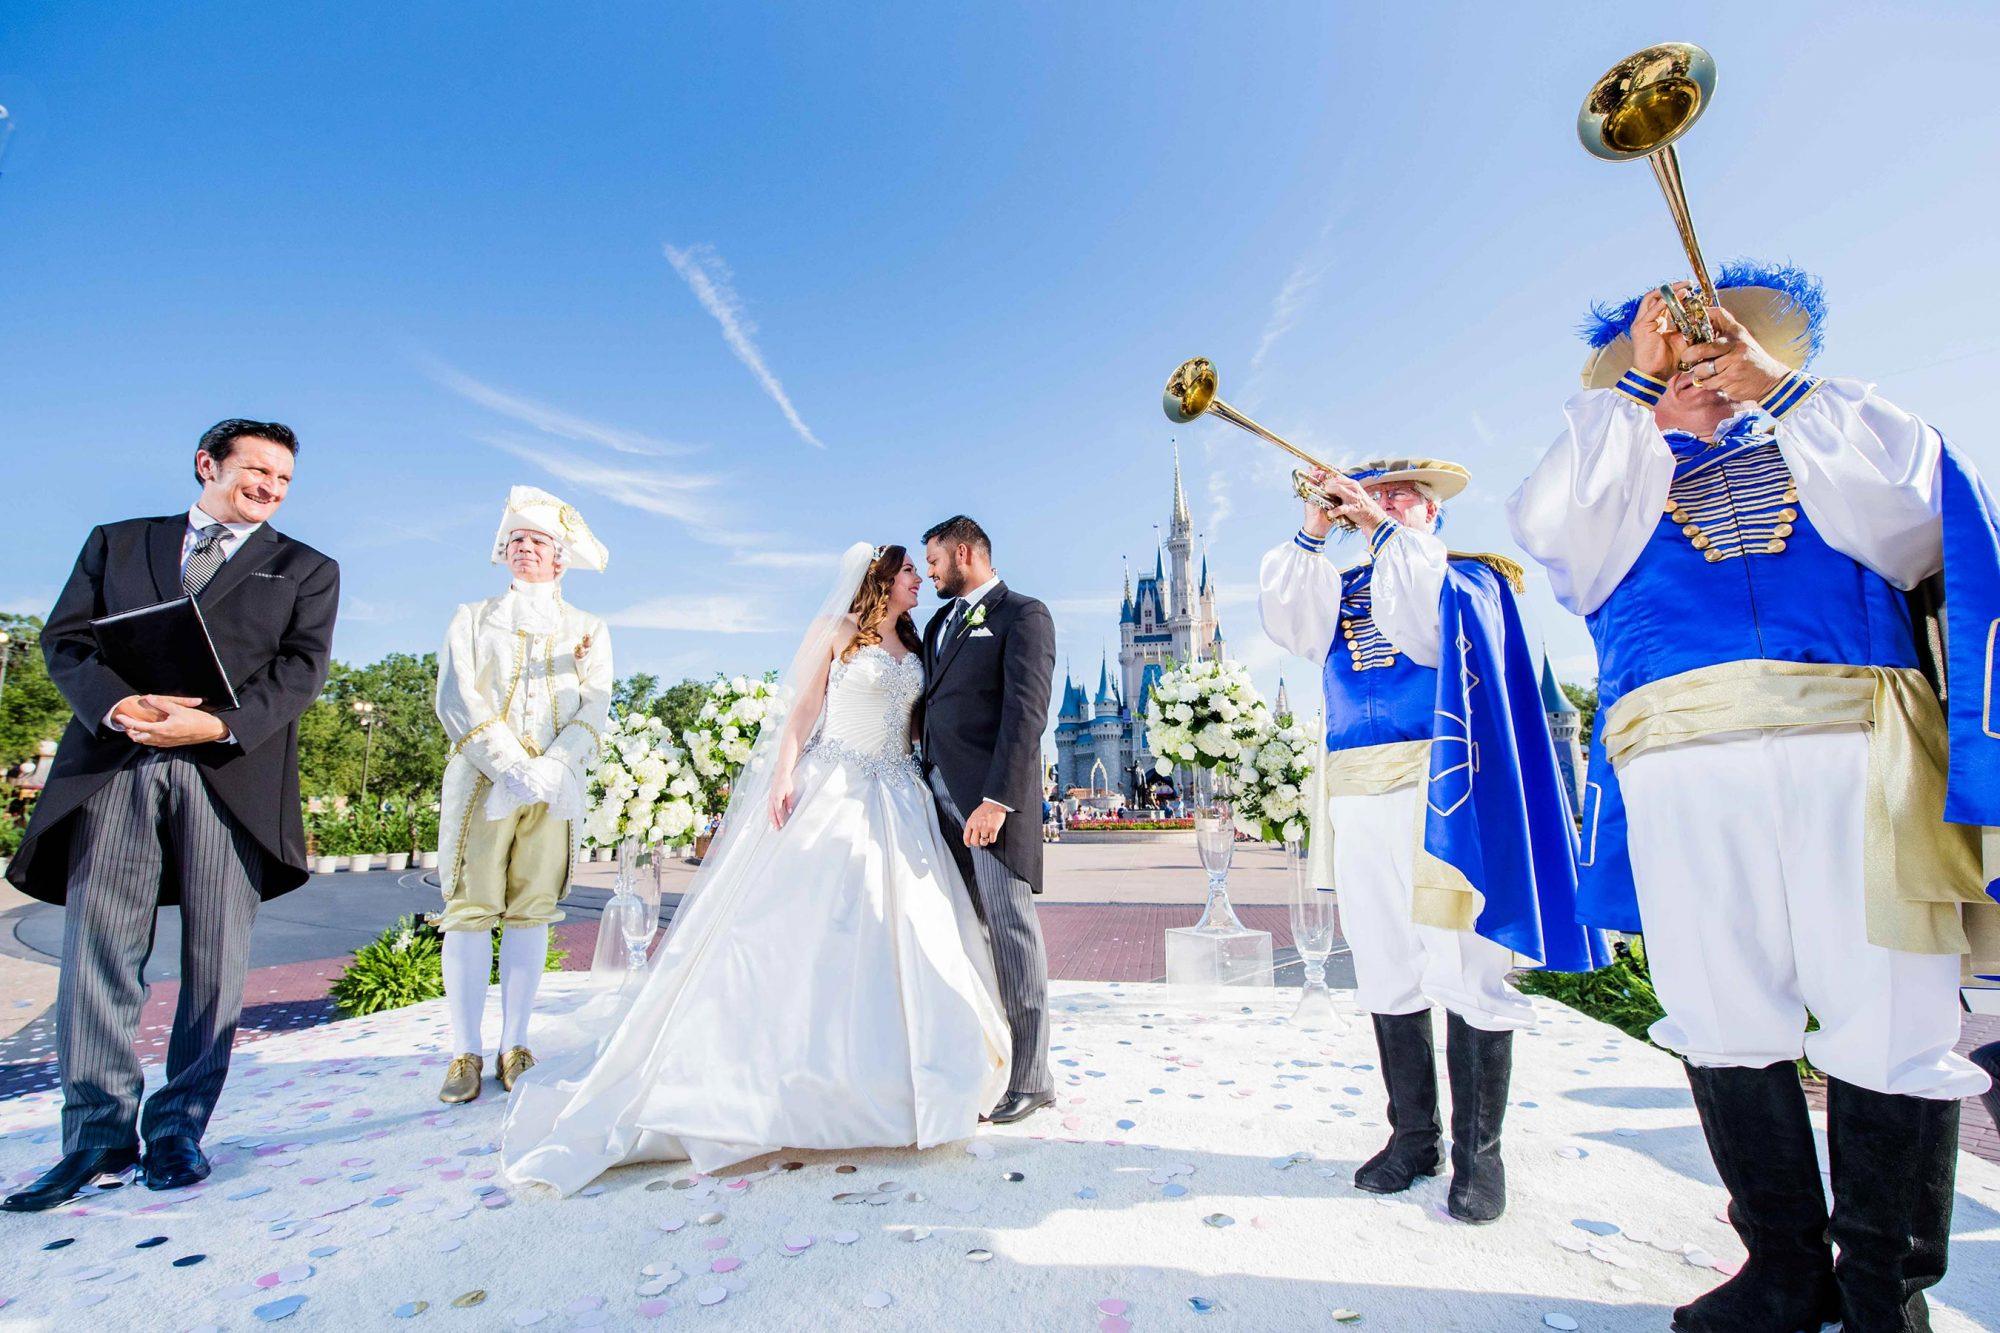 Texas Couple Surprised with Dream Wedding at Walt Disney World Resort